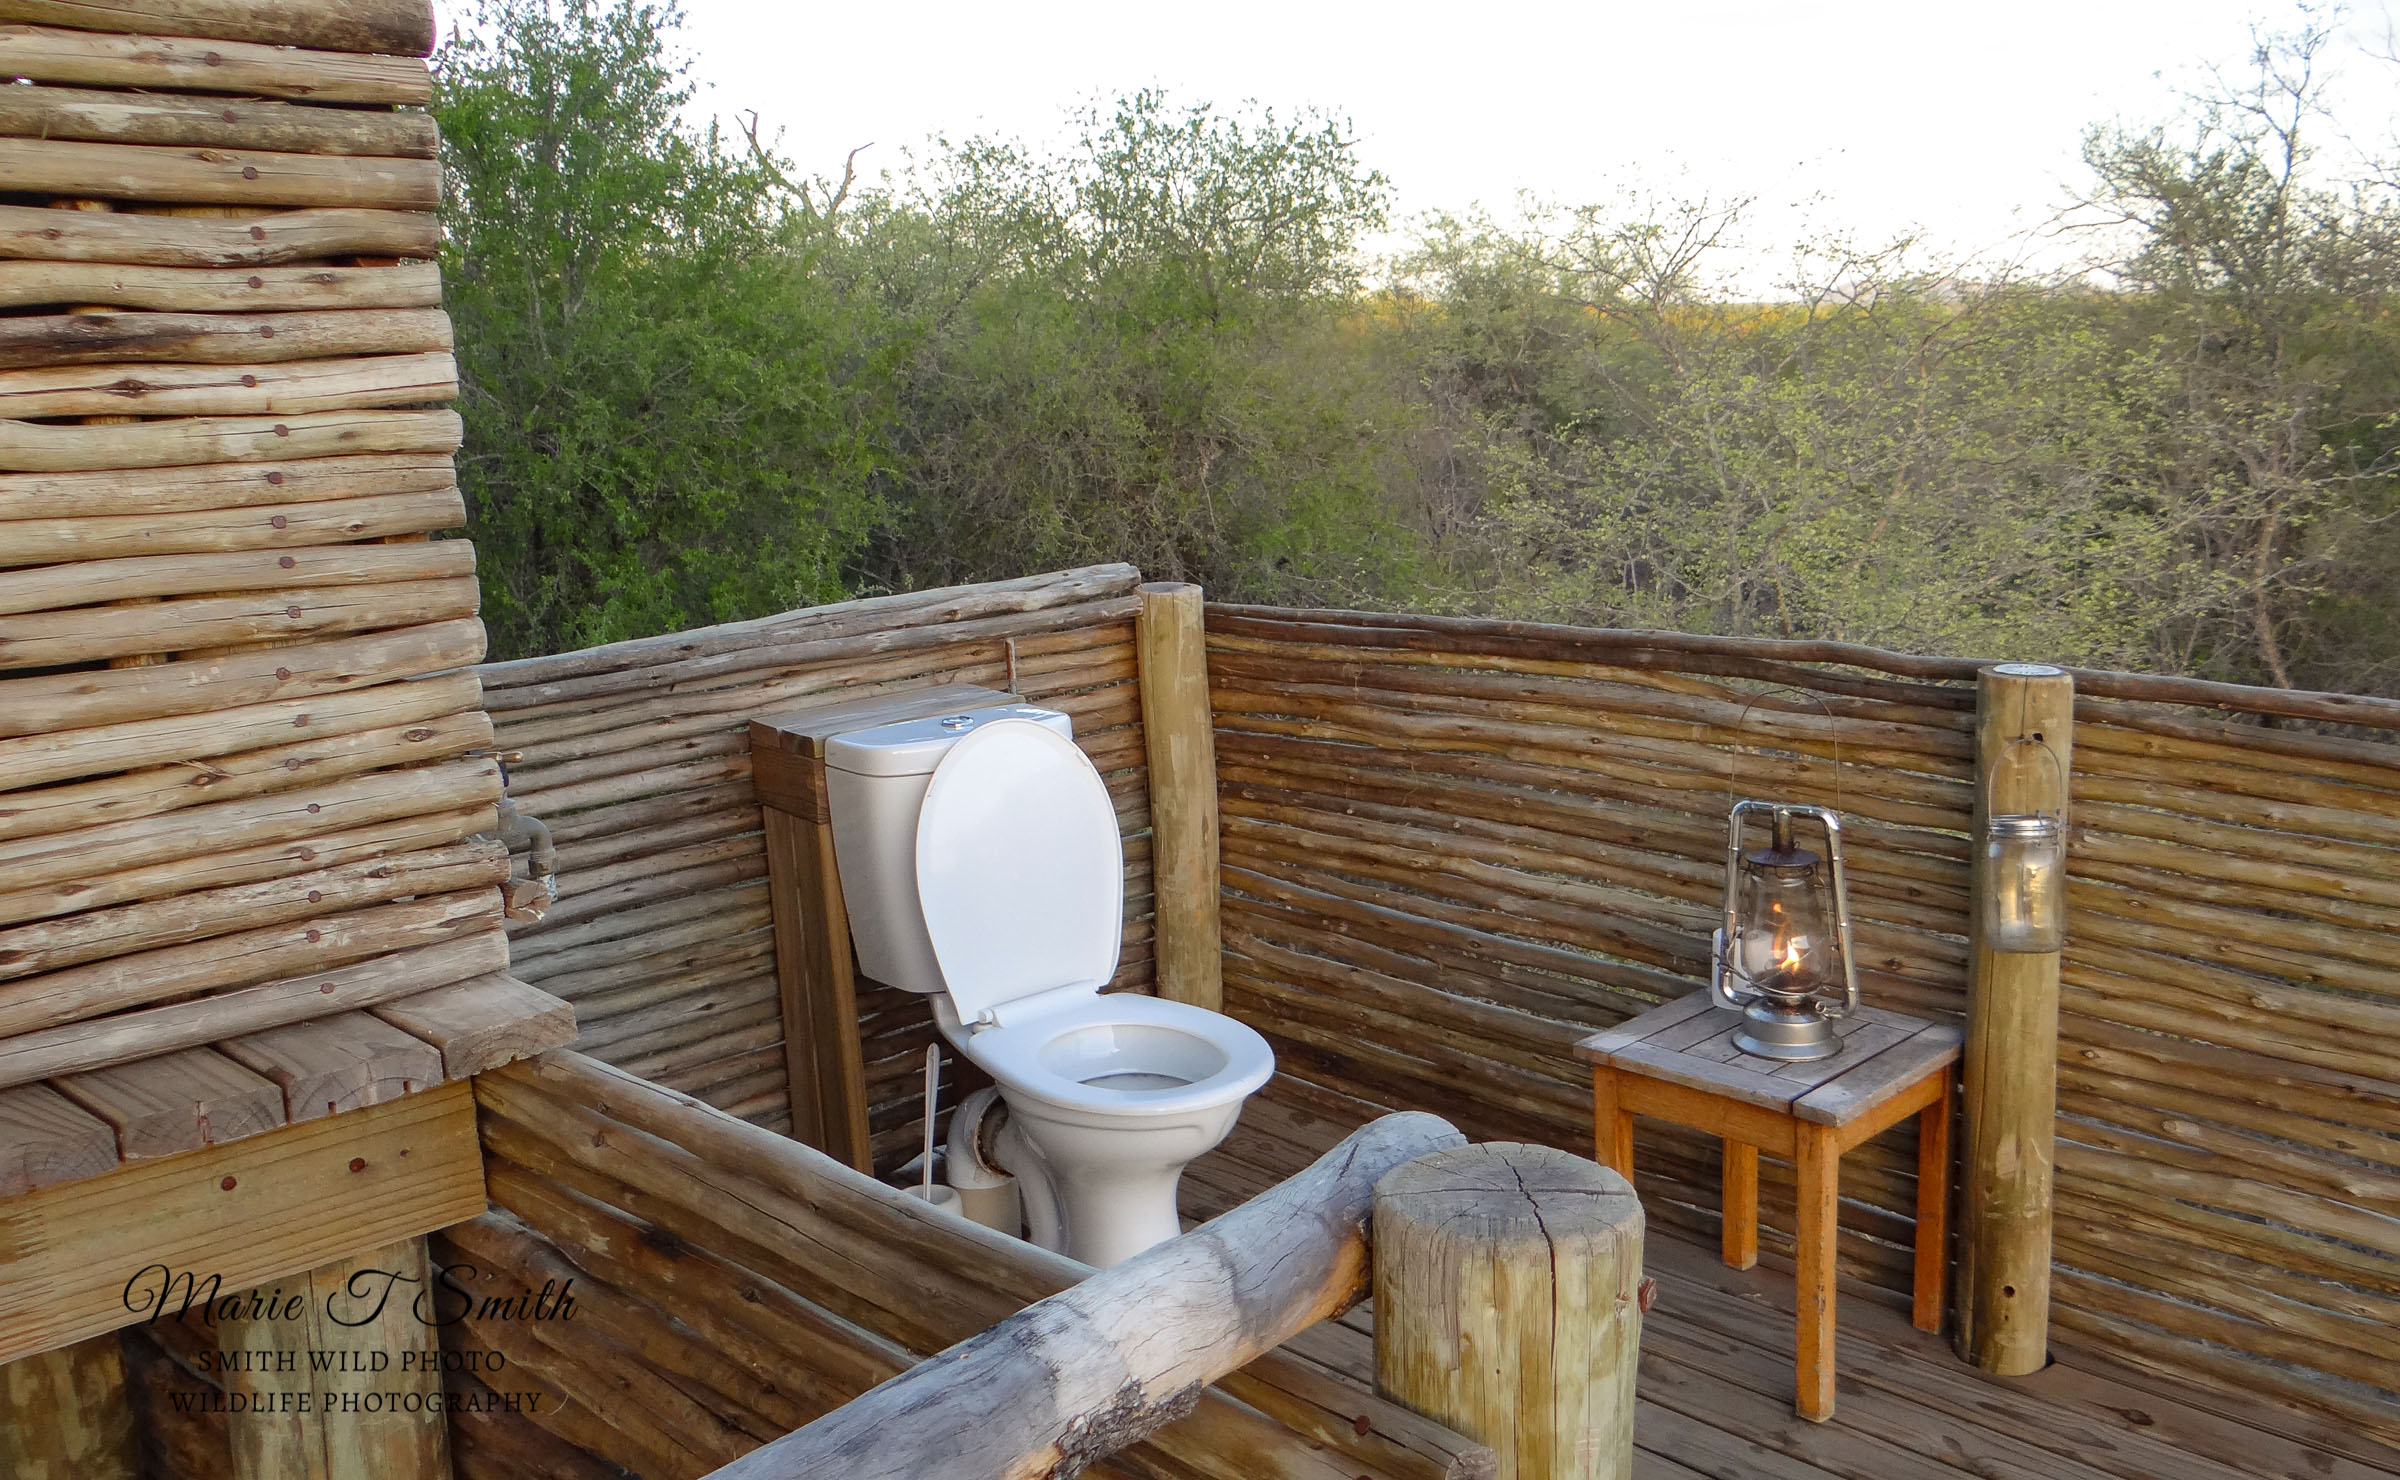 Toilet on a decking